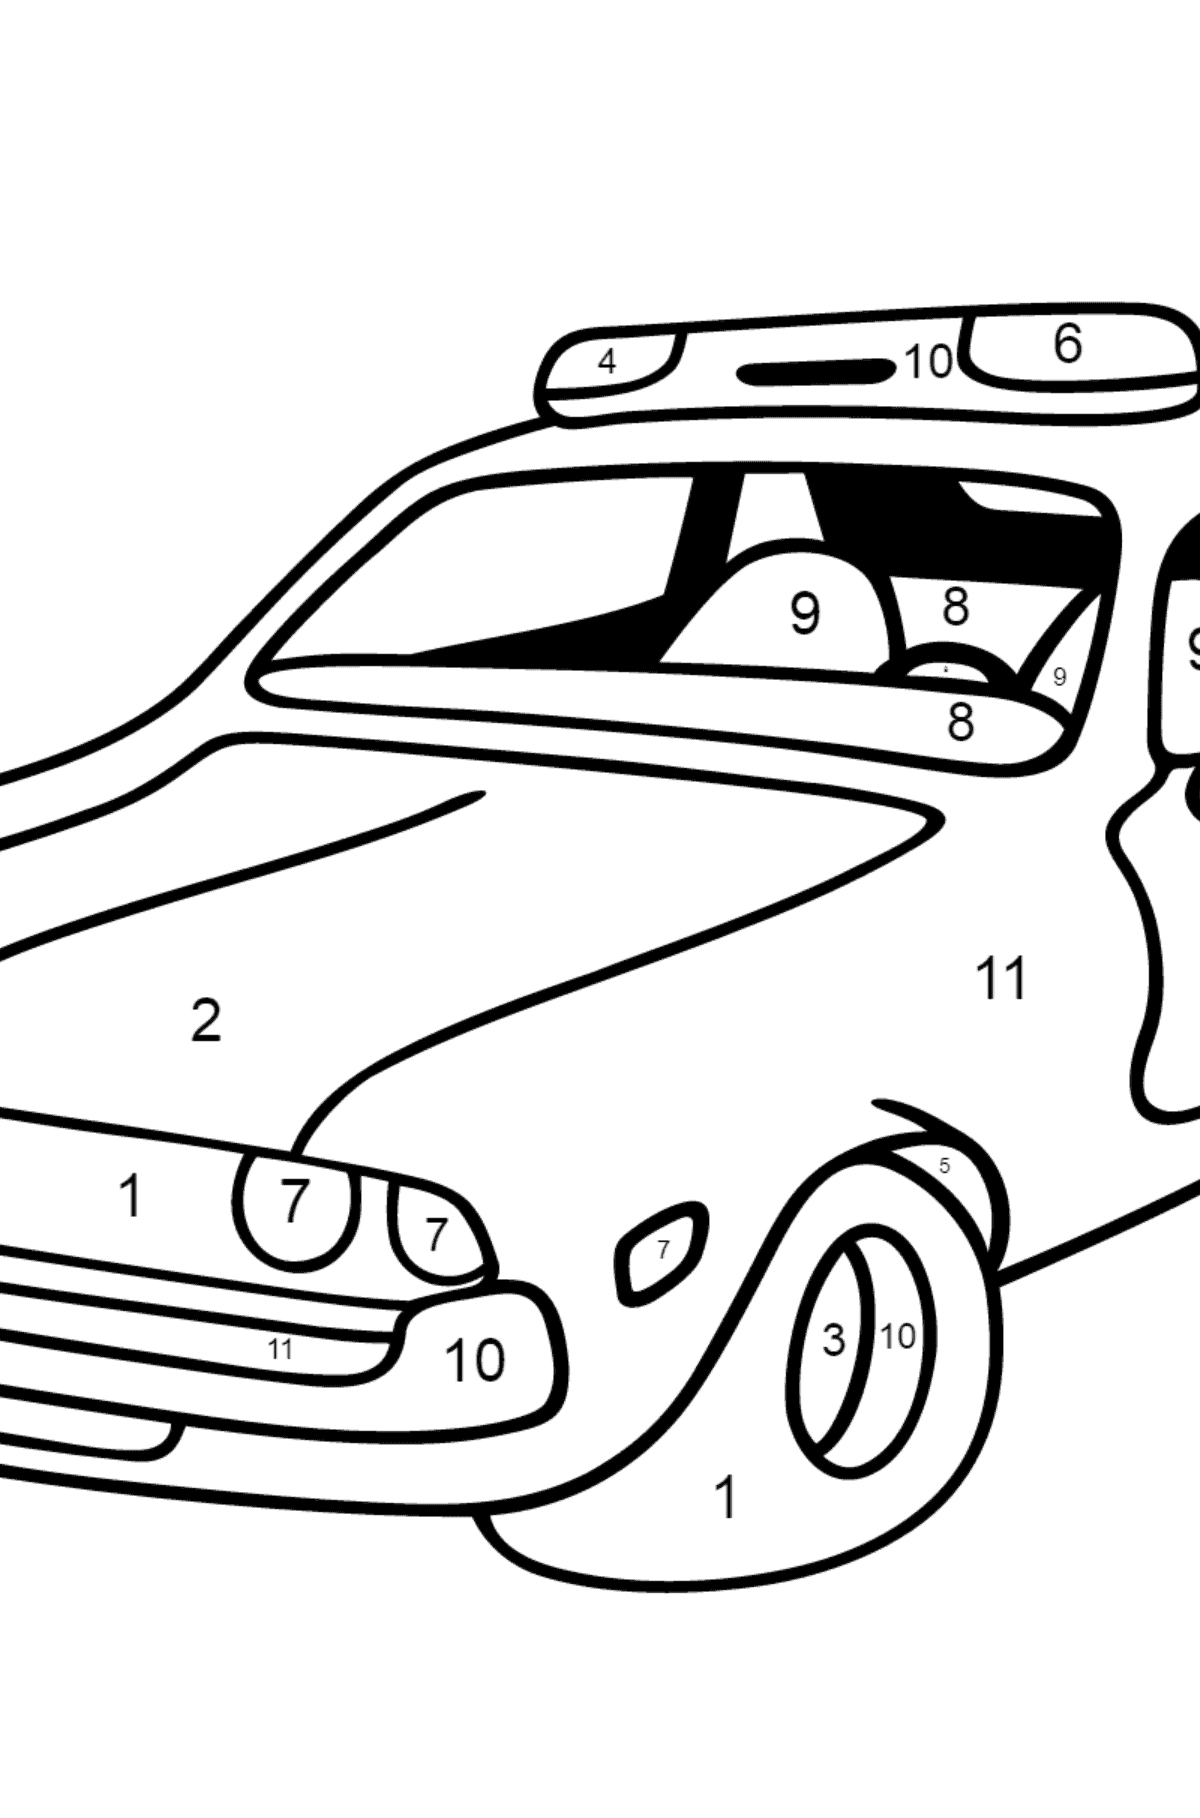 Coloring Page - A Red and White Police Car for Children  - Color by Number